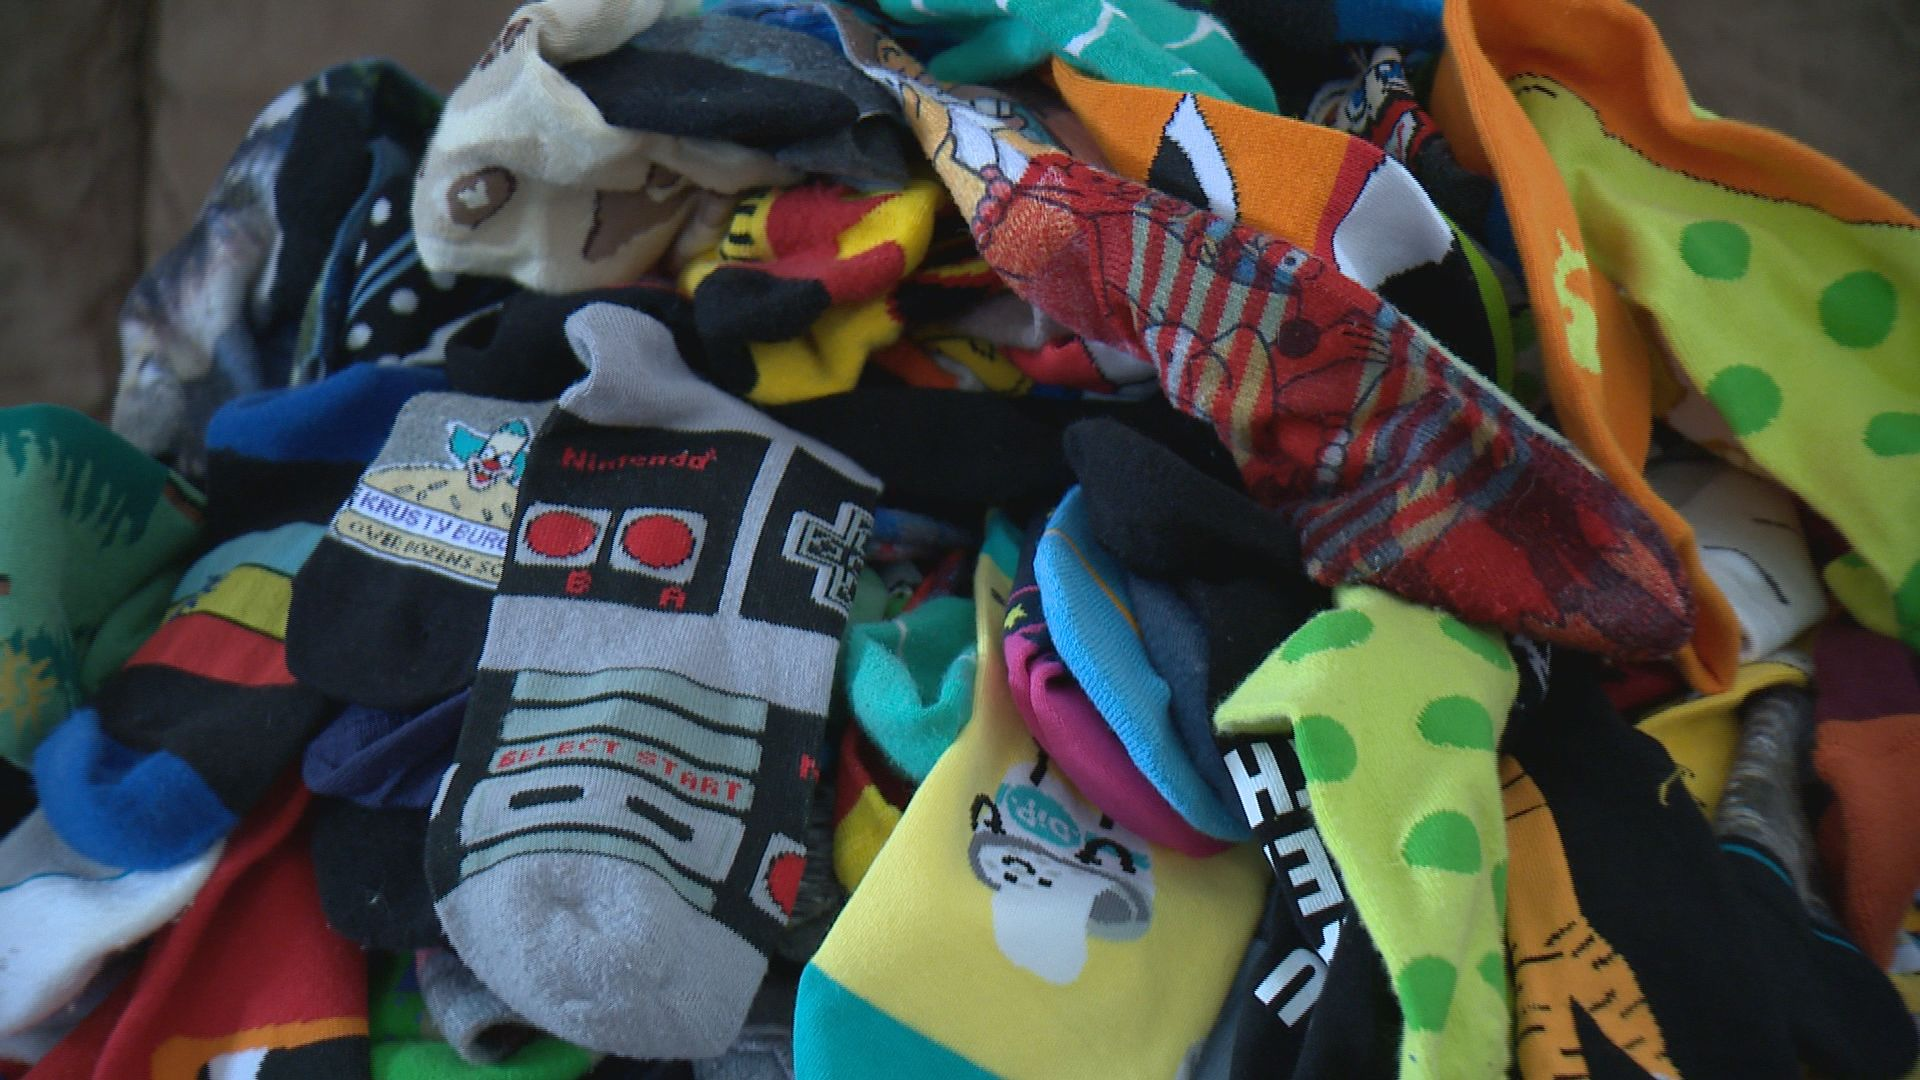 'Socks for Smiles' campaign touches hearts, and feet, around the world